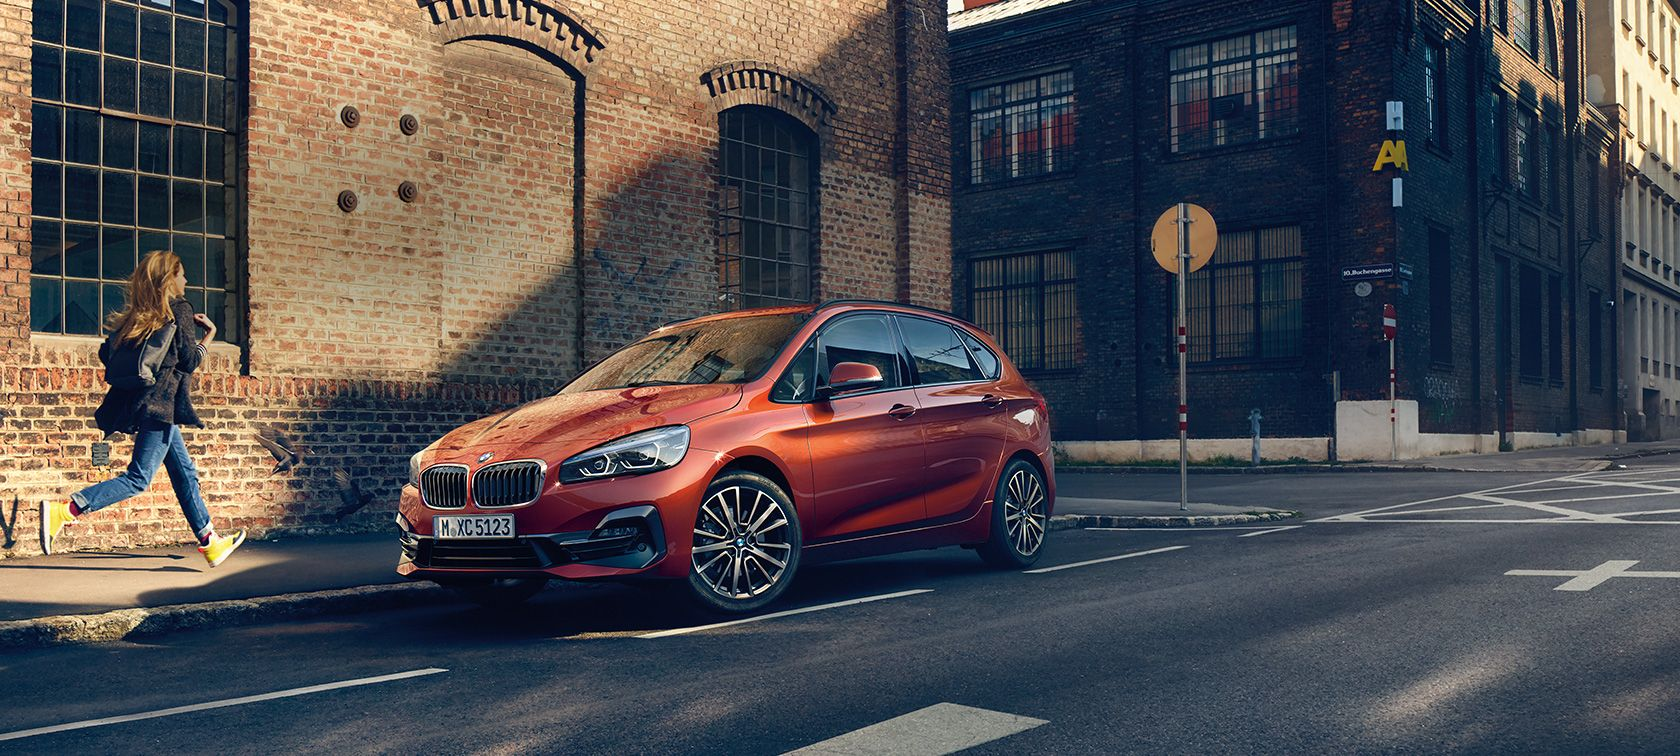 BMW Wagner - BMW 2er Active Tourer Angebot